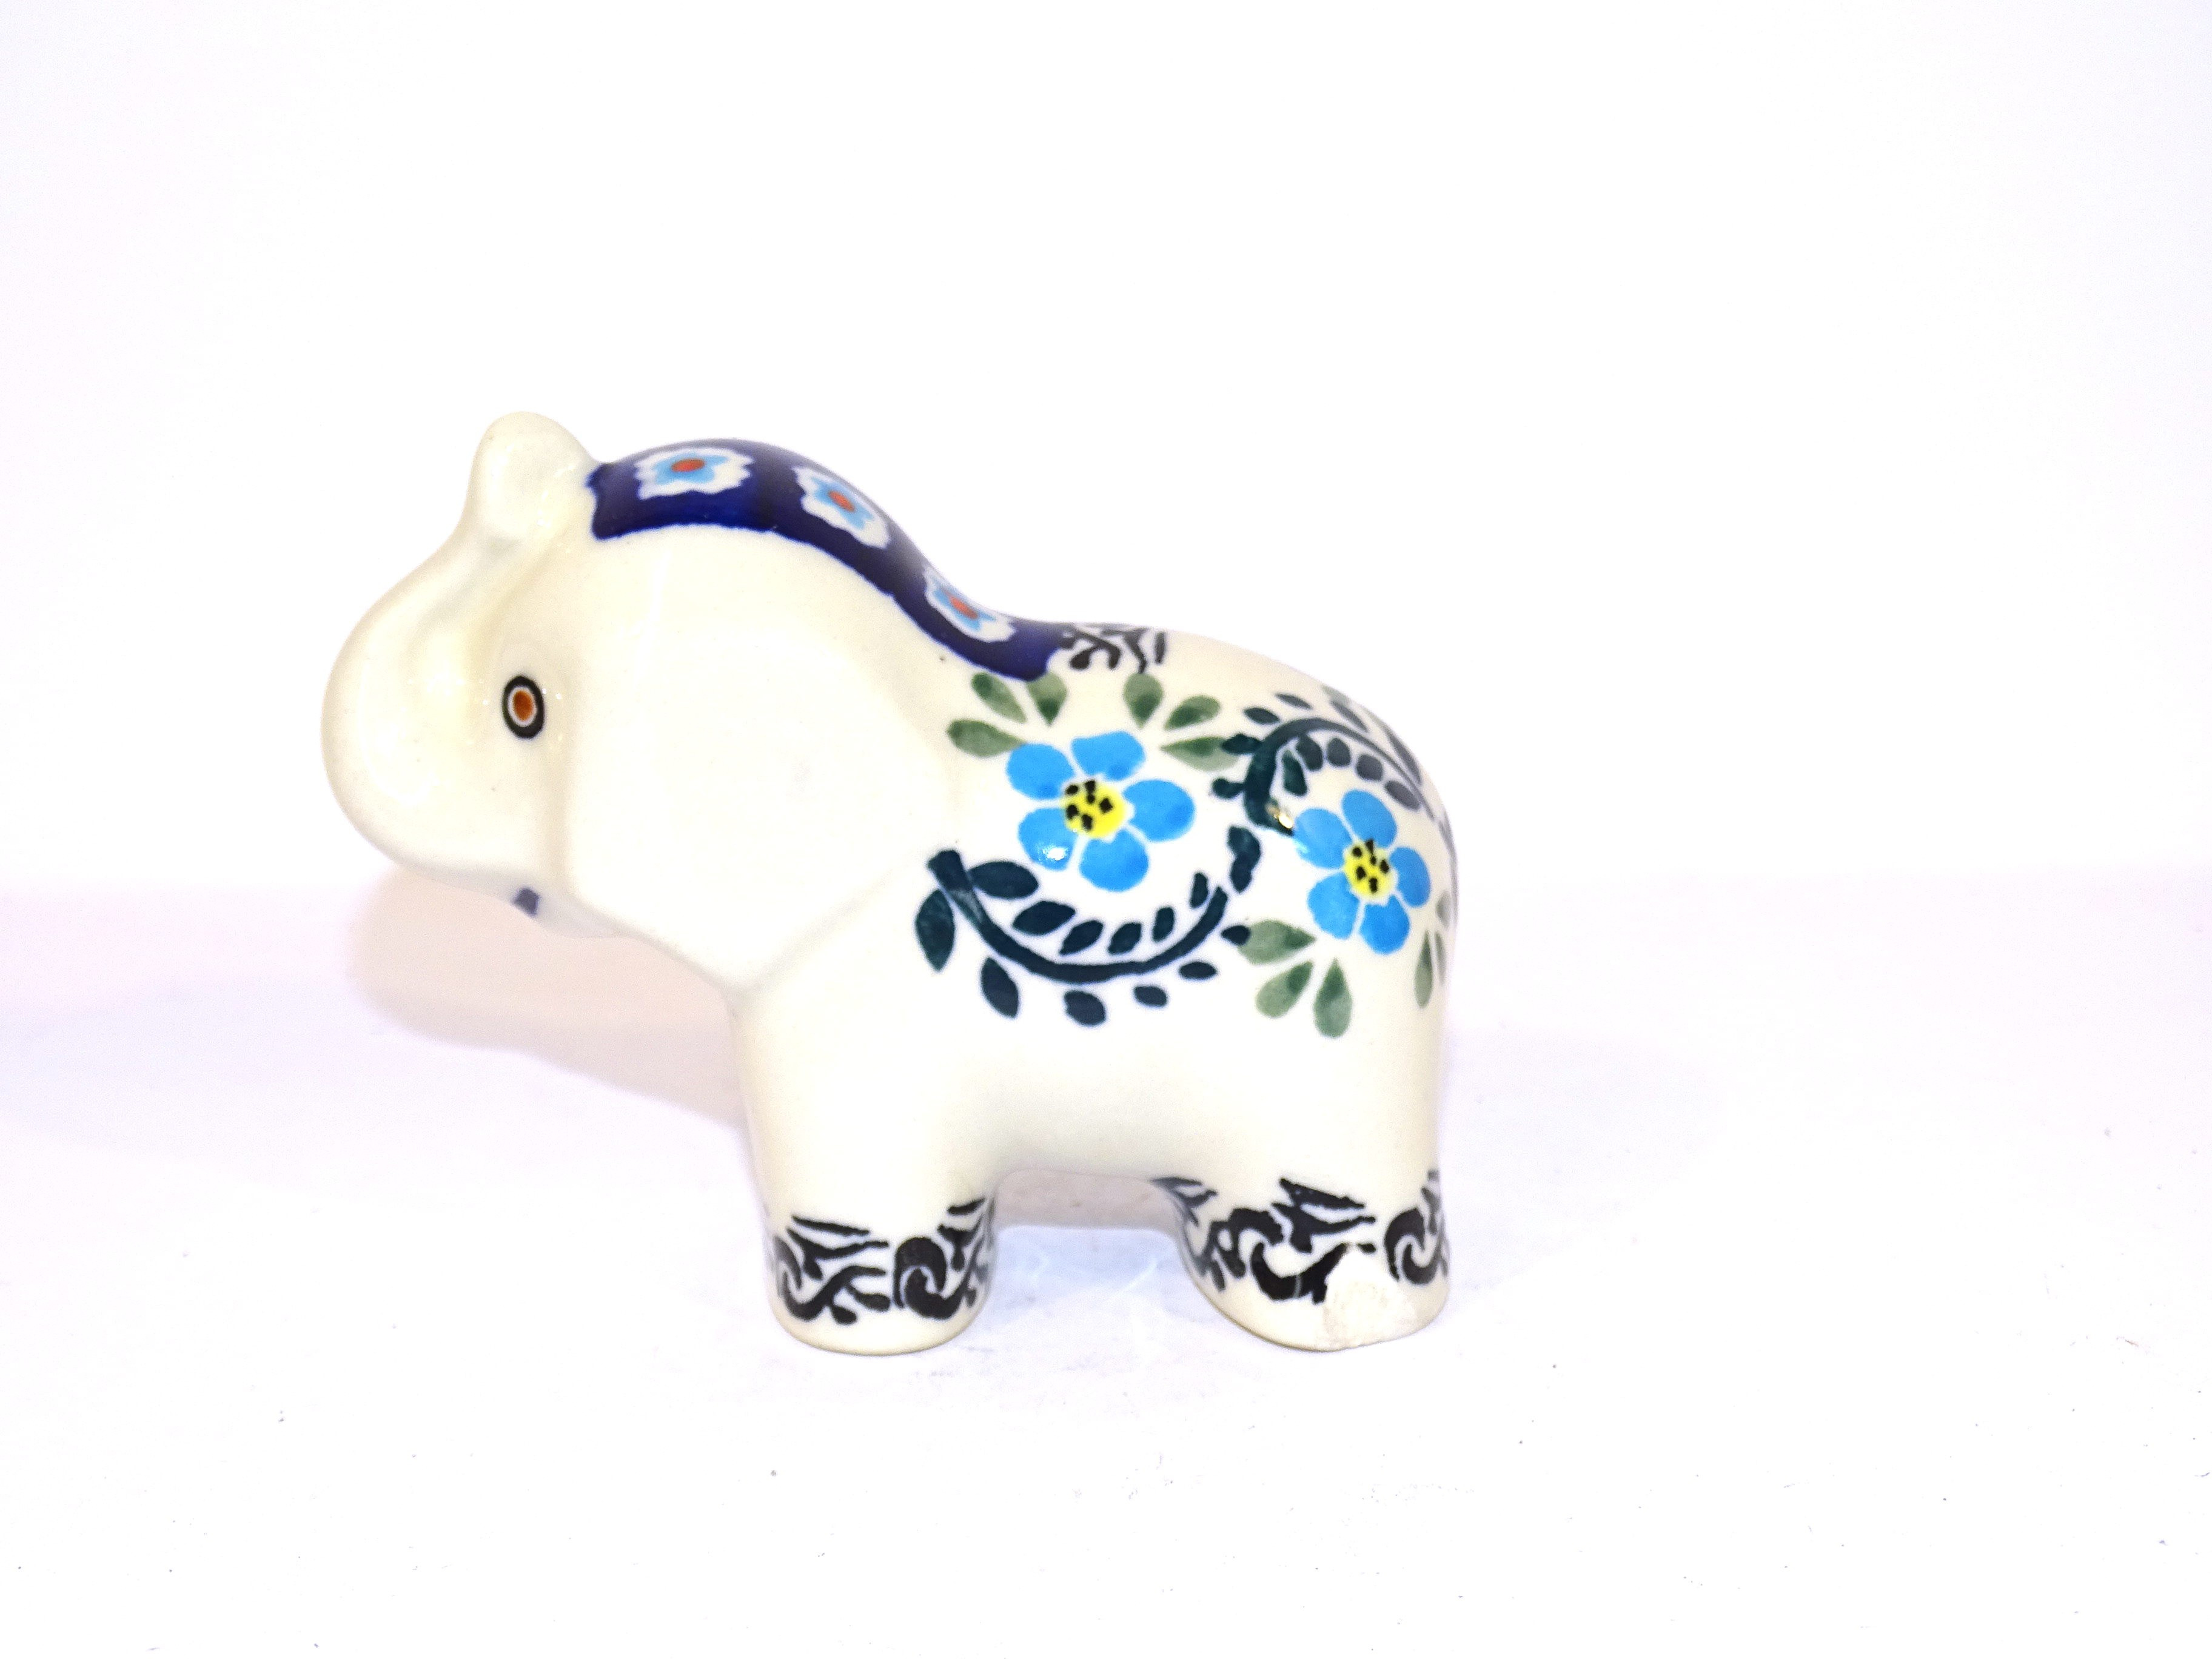 Pottery Avenue Small Elephant Figurine - 1874-1145A HERITAGE HOME